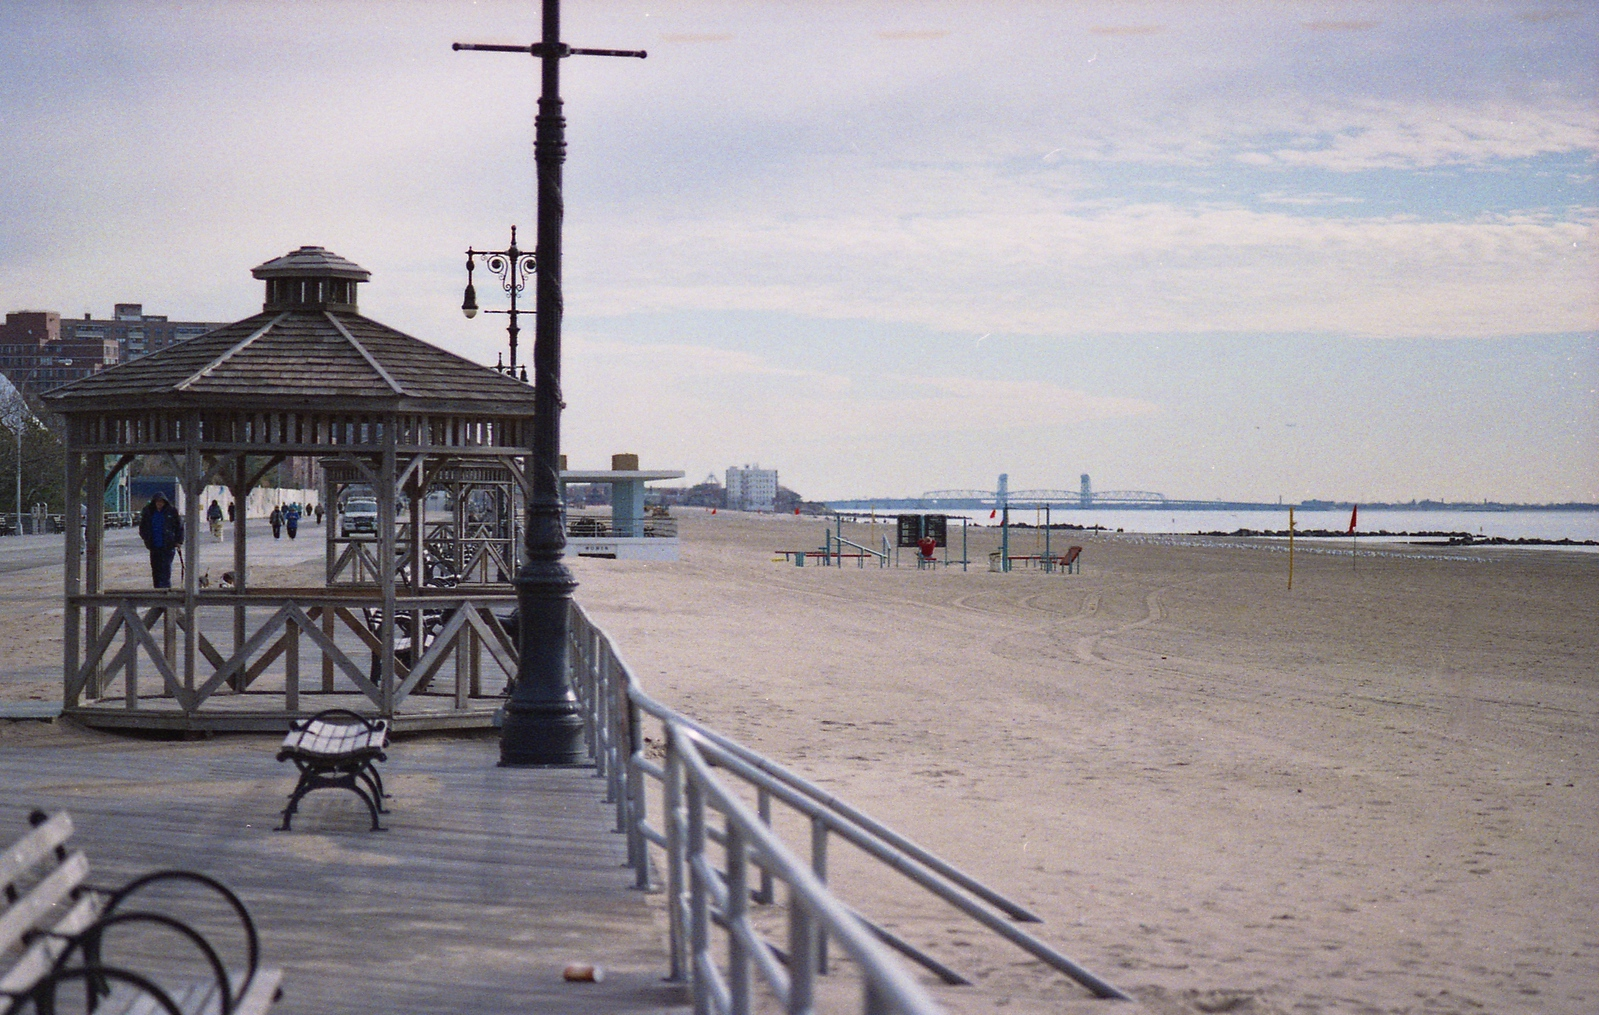 Coney Island Winter Beach and Boardwalk